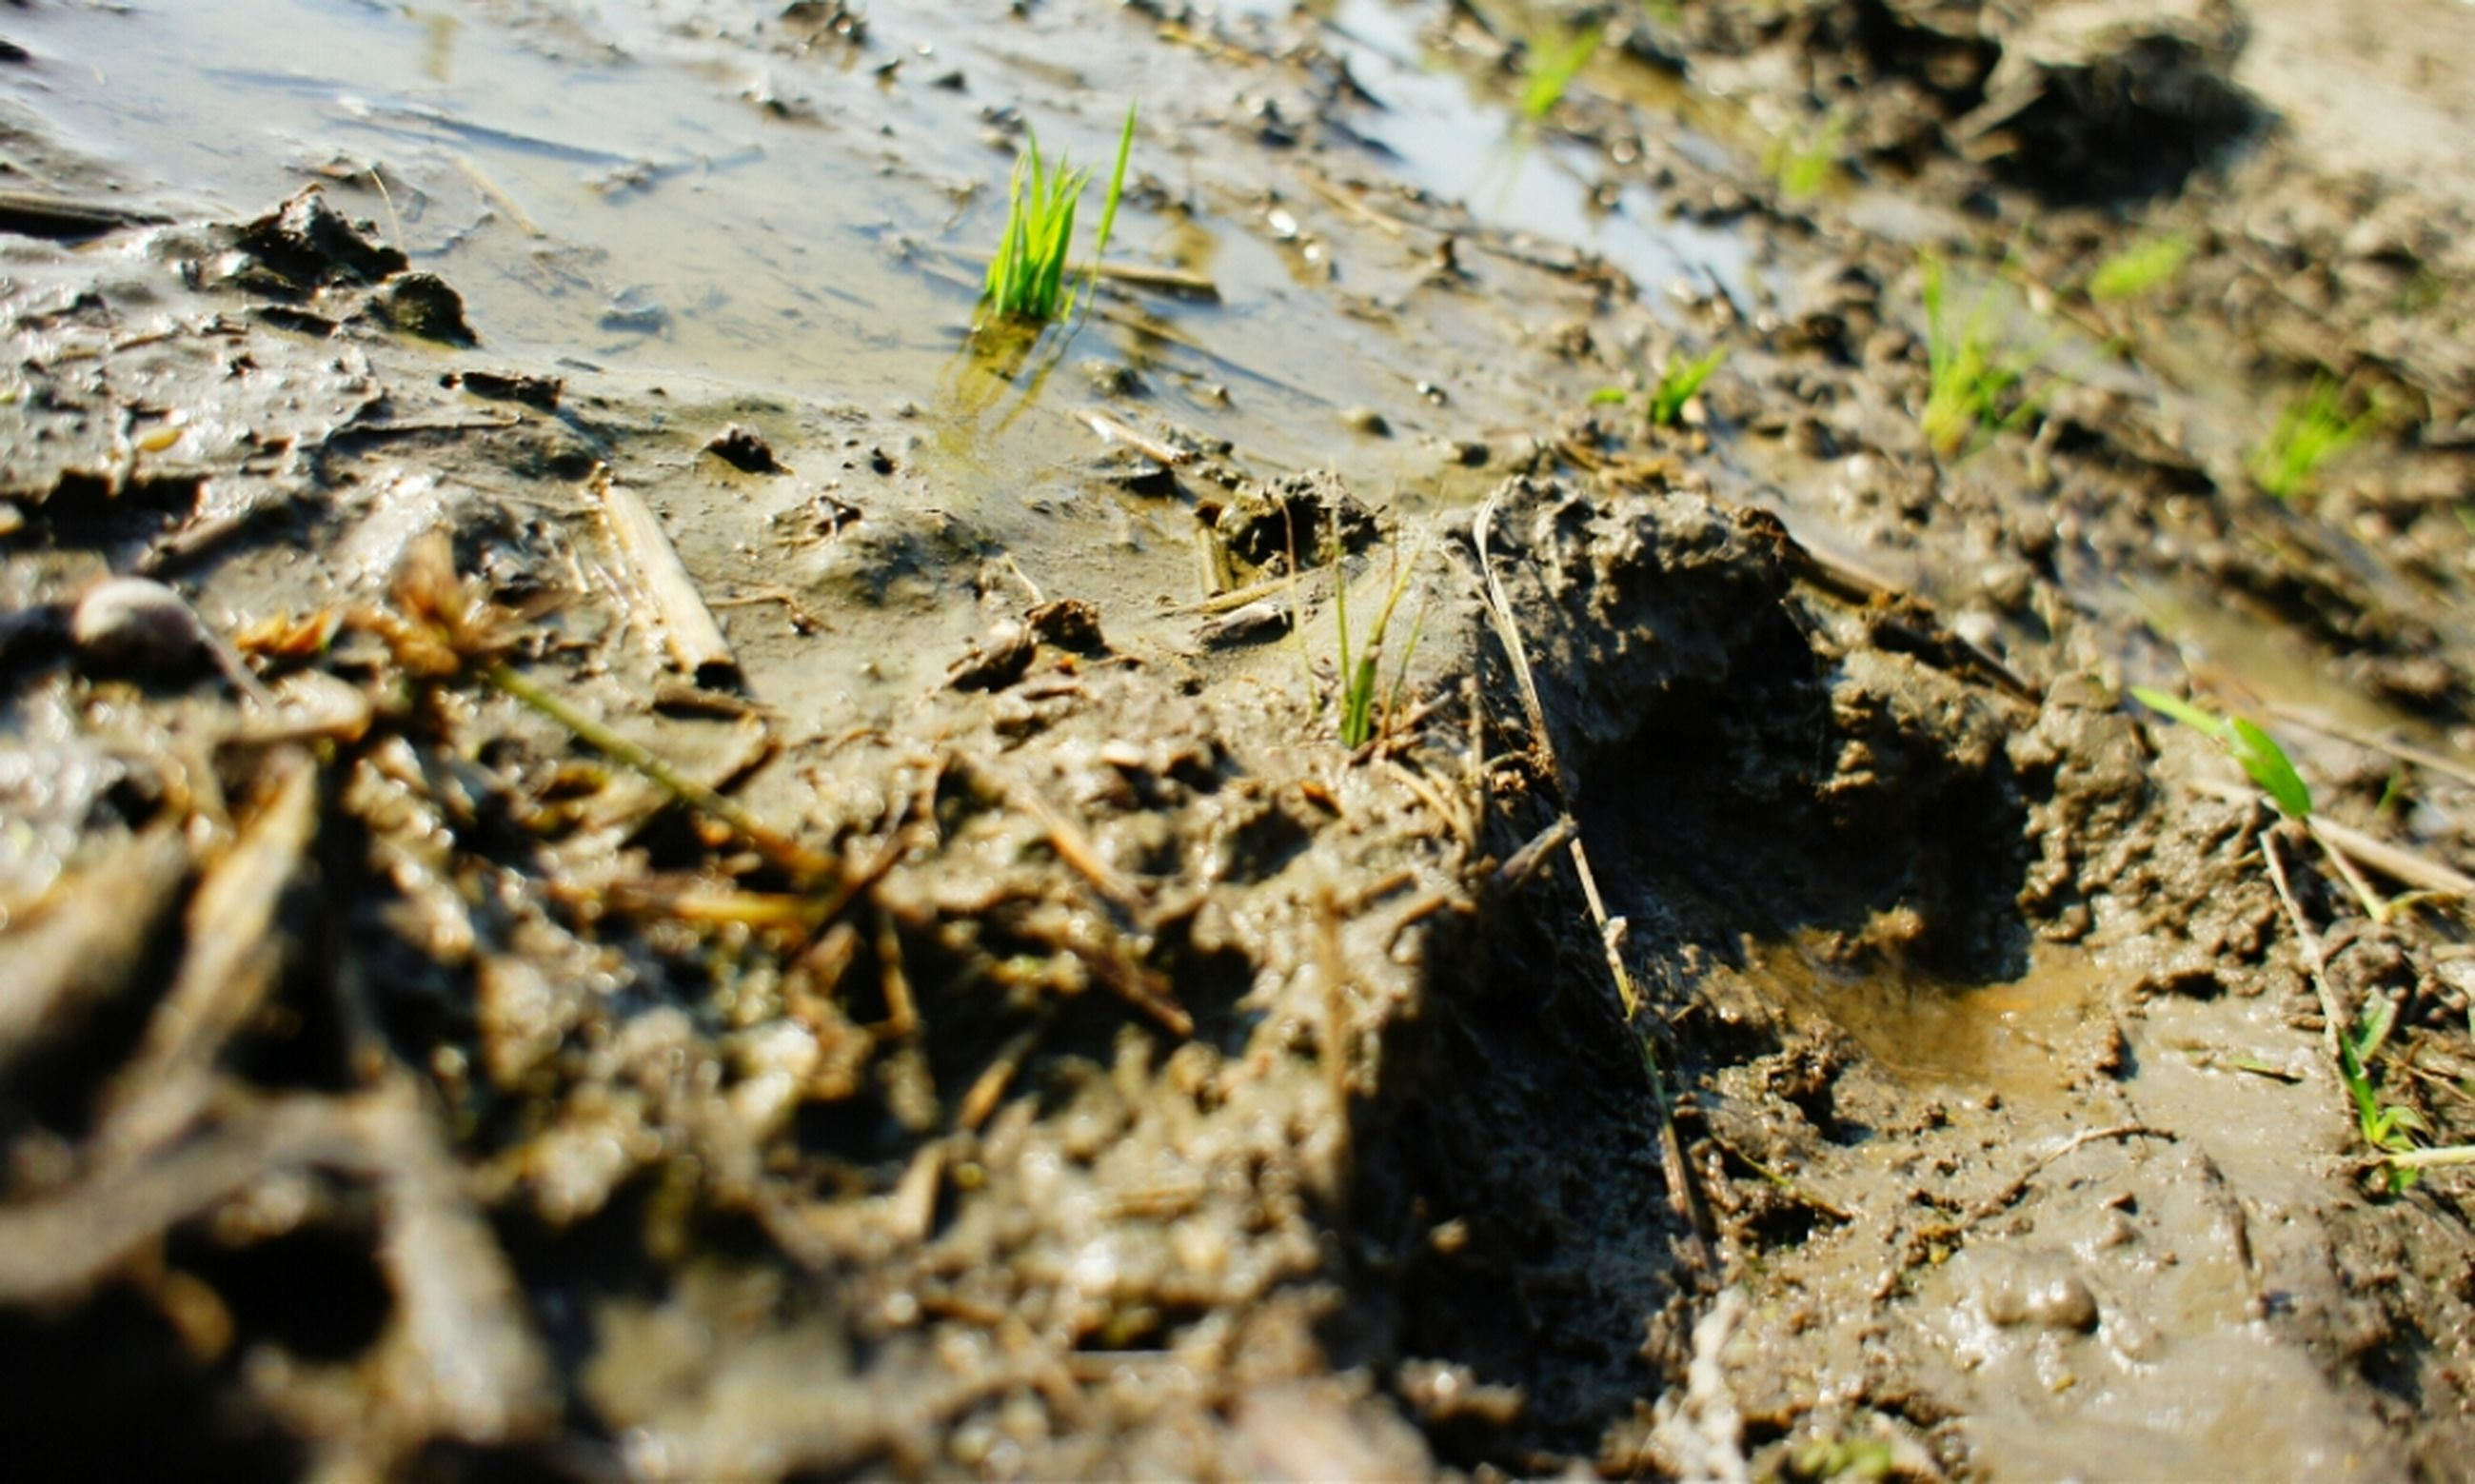 nature, selective focus, leaf, tranquility, close-up, surface level, growth, rock - object, high angle view, dry, plant, field, day, ground, outdoors, dirt, no people, sand, sunlight, stone - object